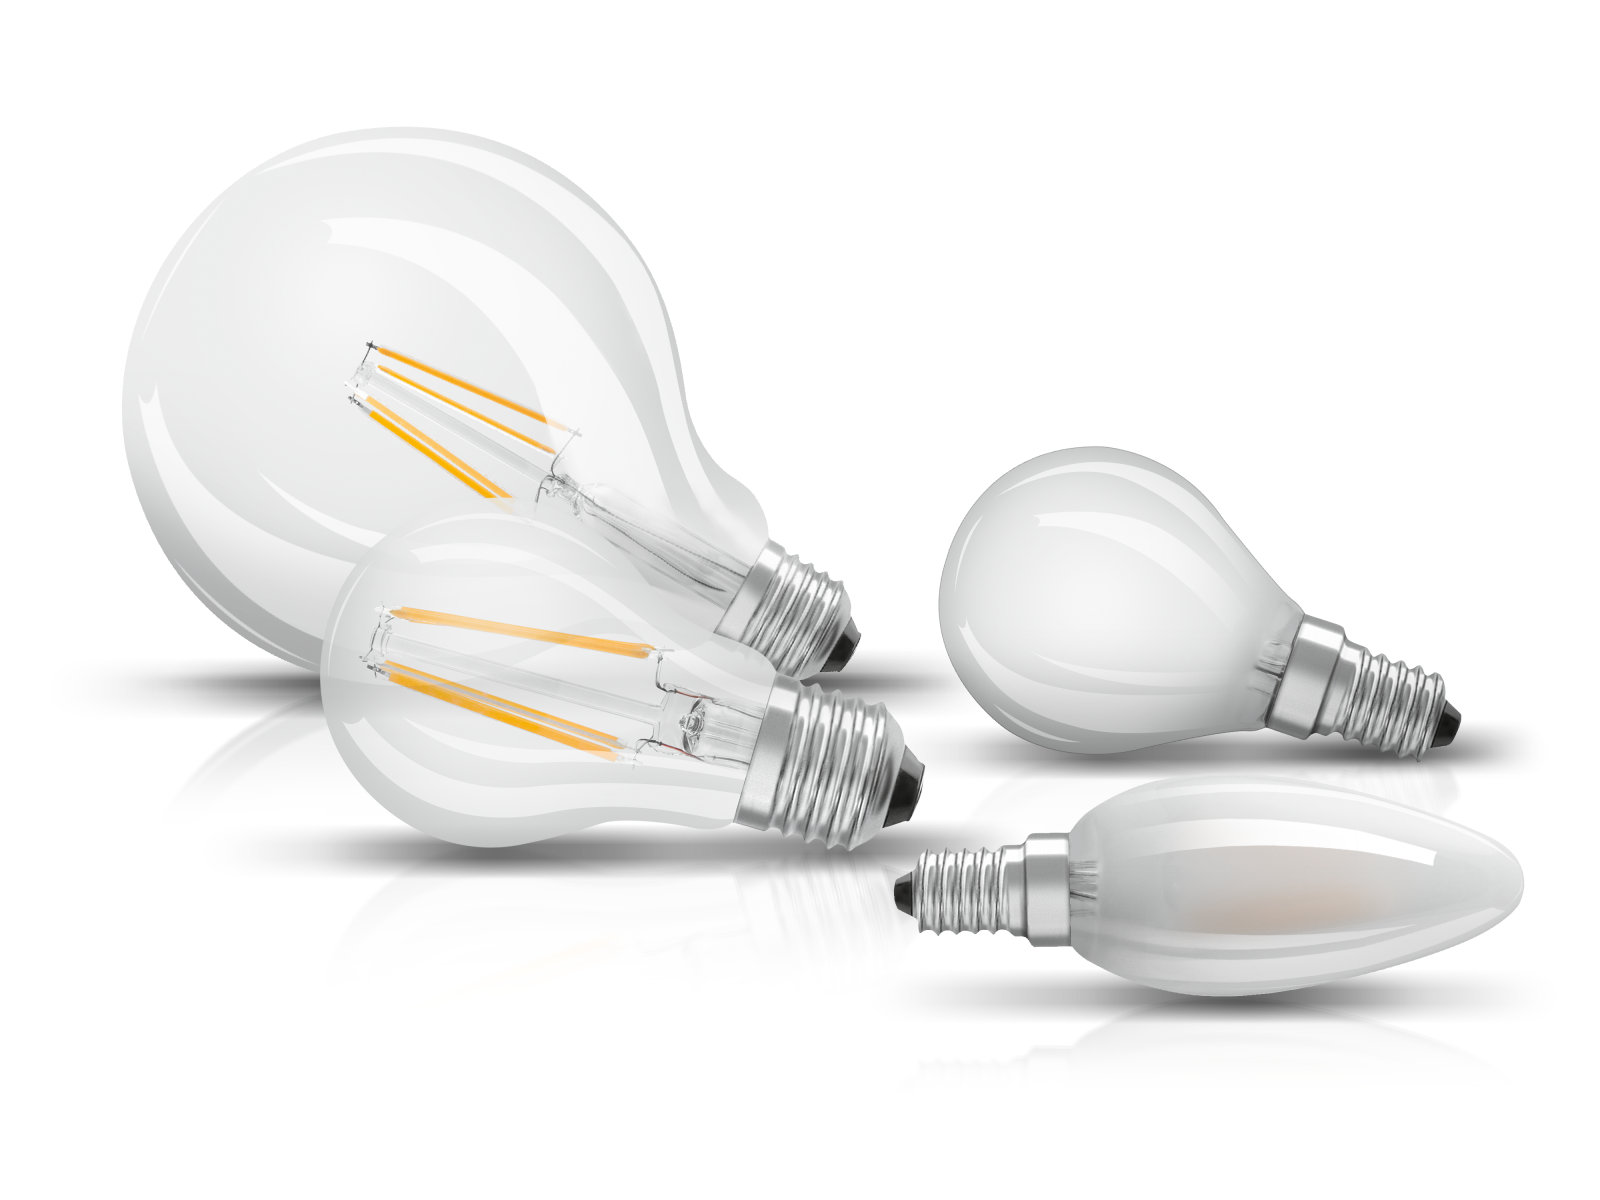 LED Lamps with classic bulb shapes